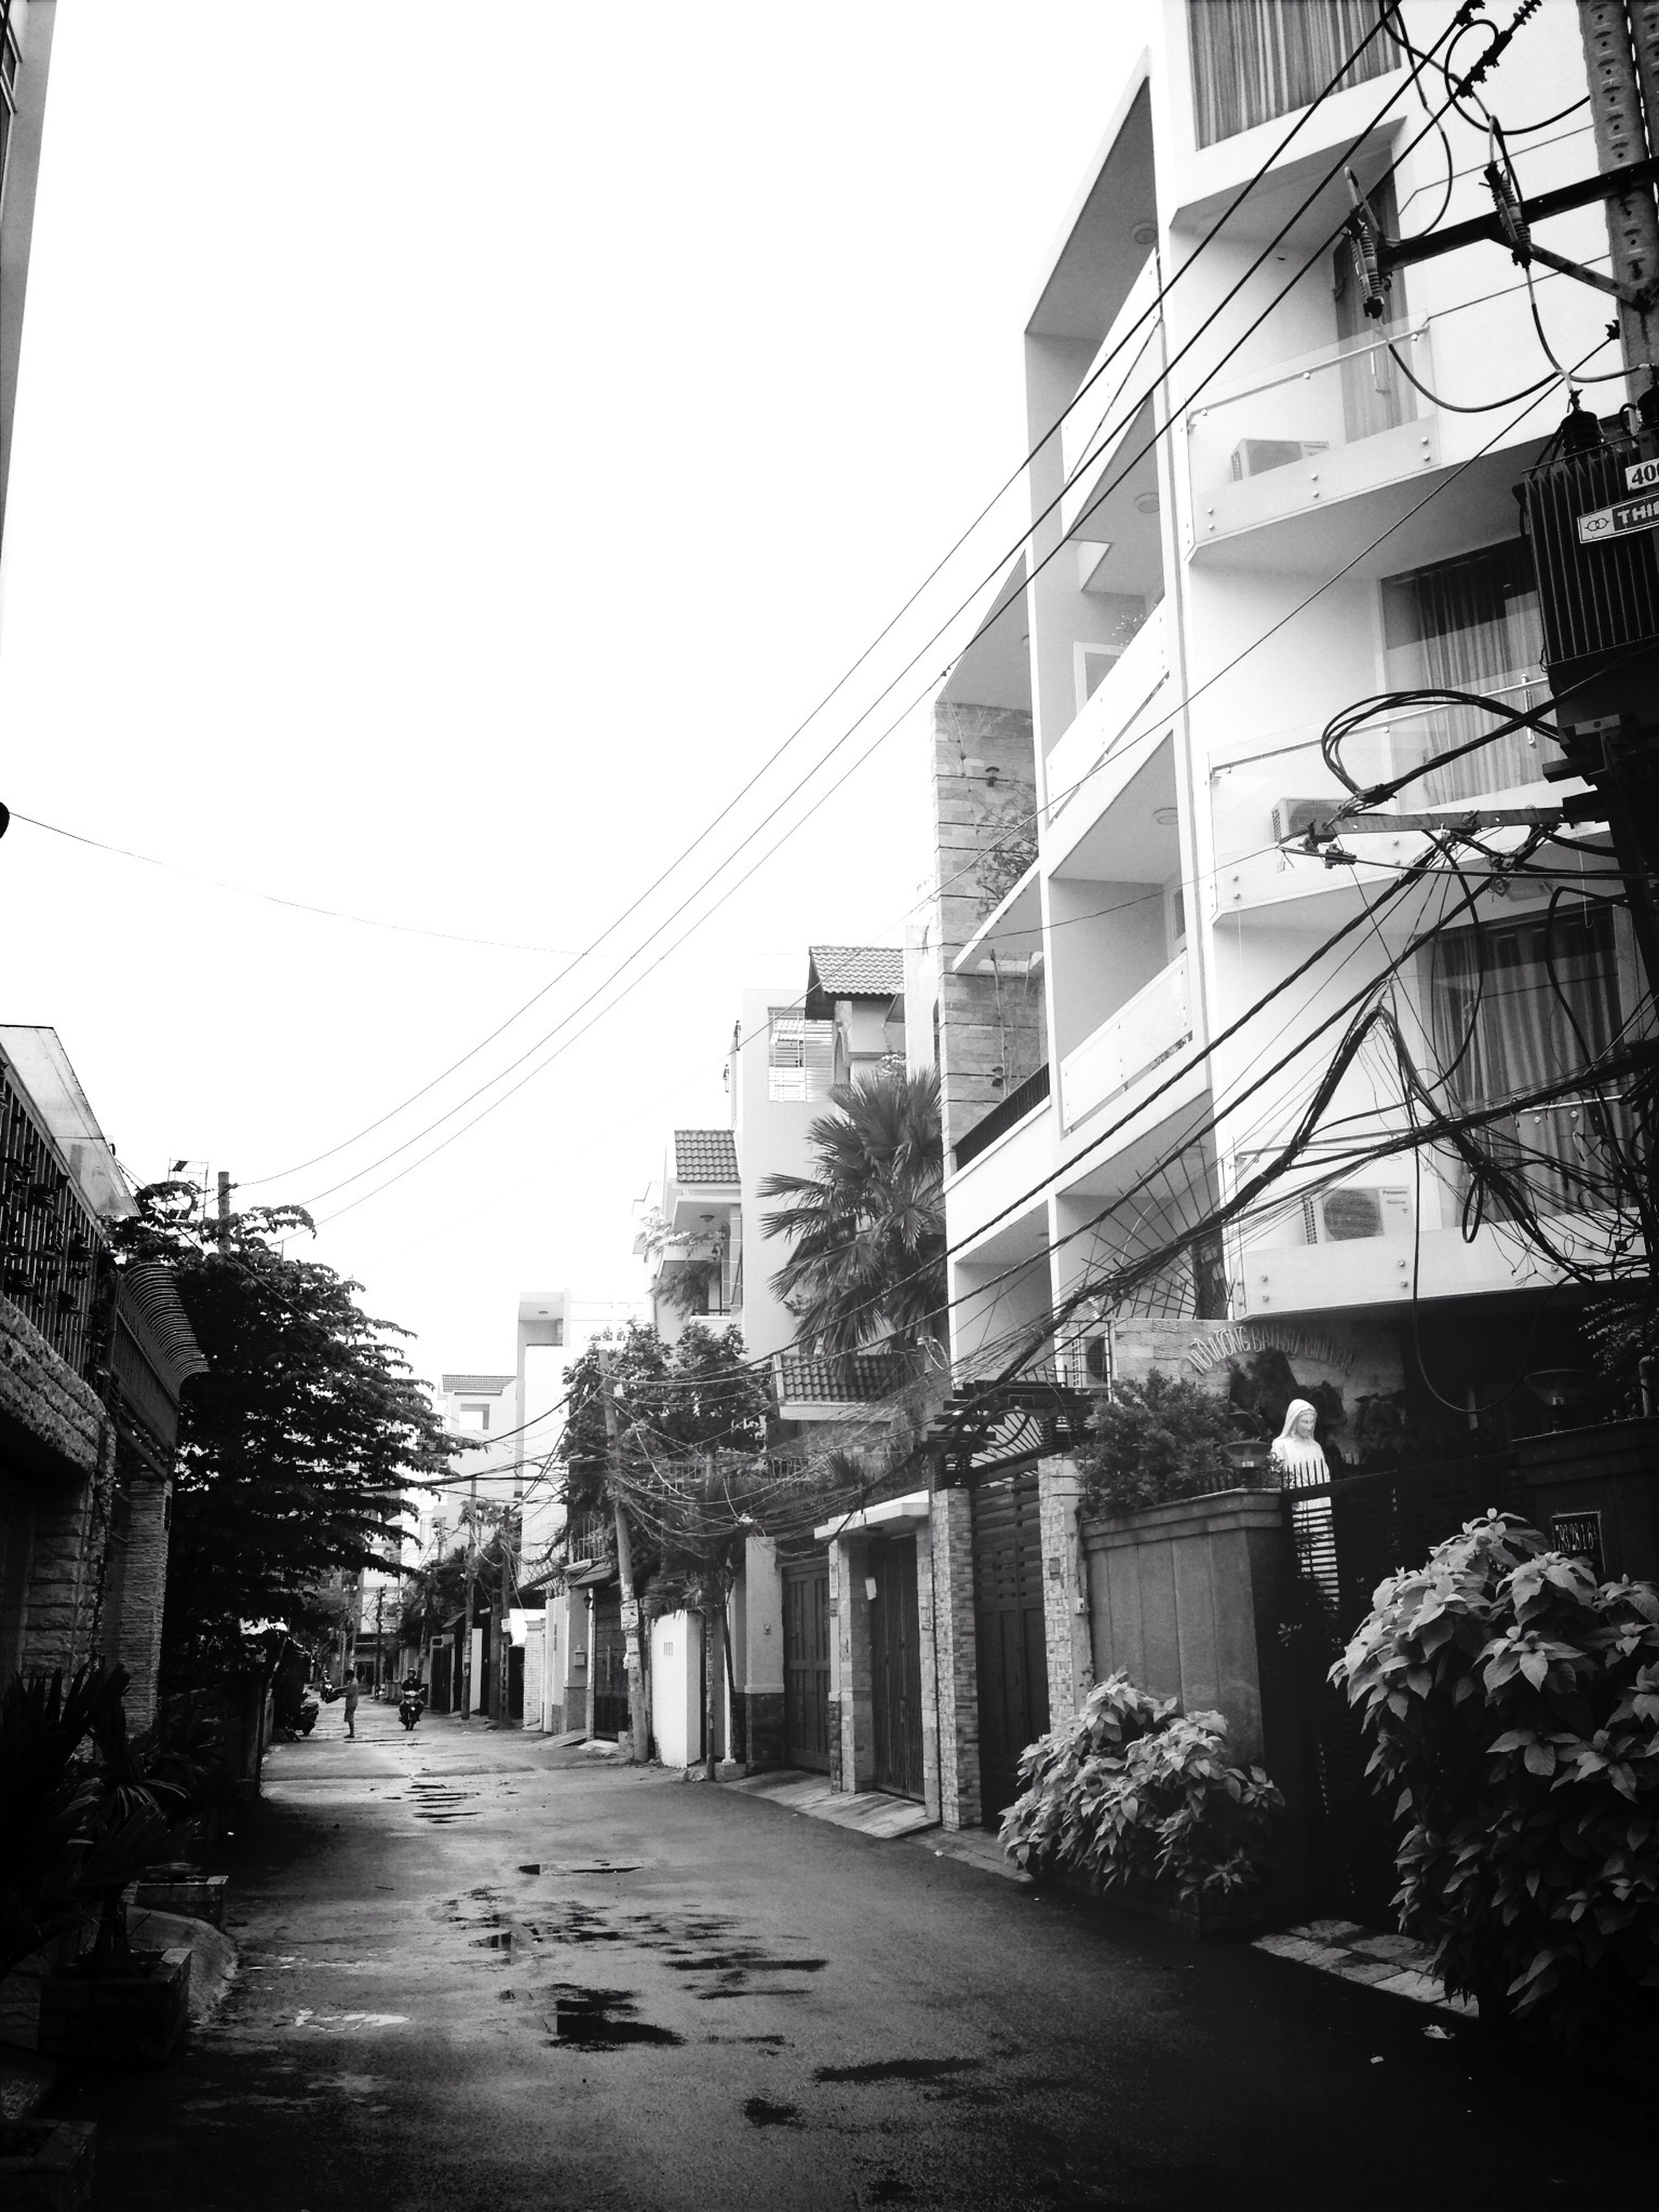 It was rainy and cold outside. Something sad hung in the air. Architecture Blackandwhite Instamood Lonely